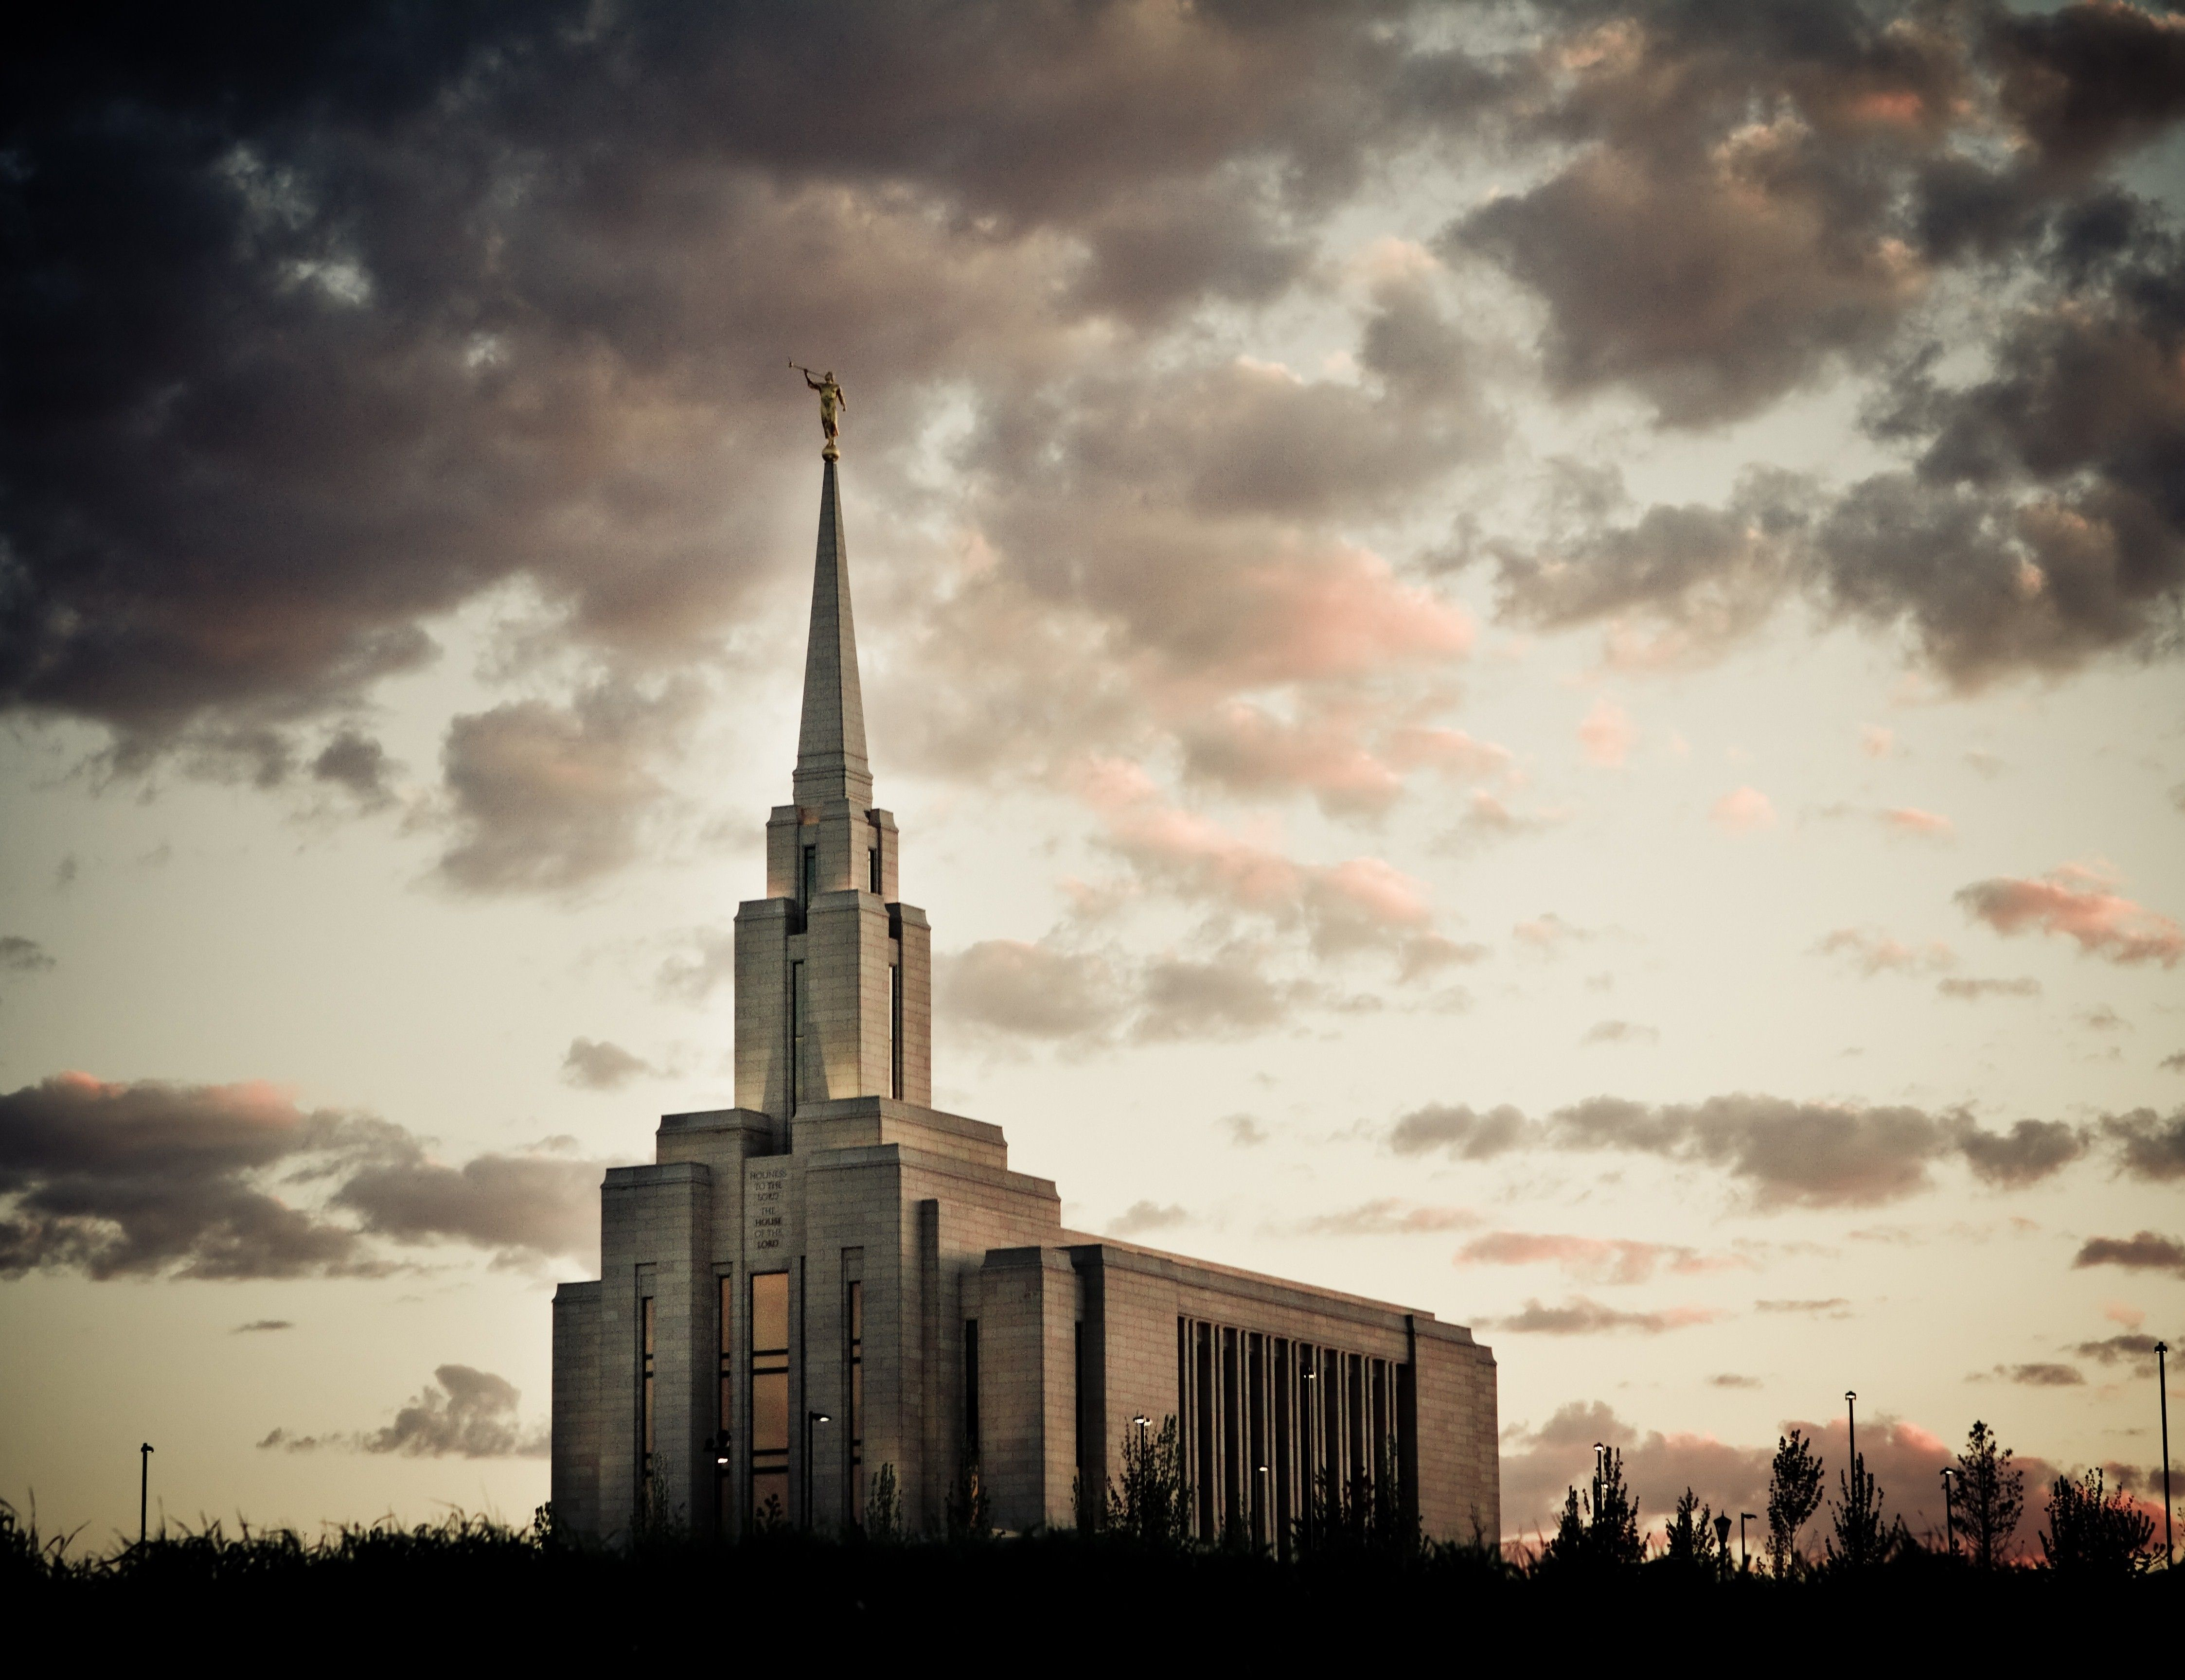 The Oquirrh Mountain Utah Temple in the evening, including scenery.